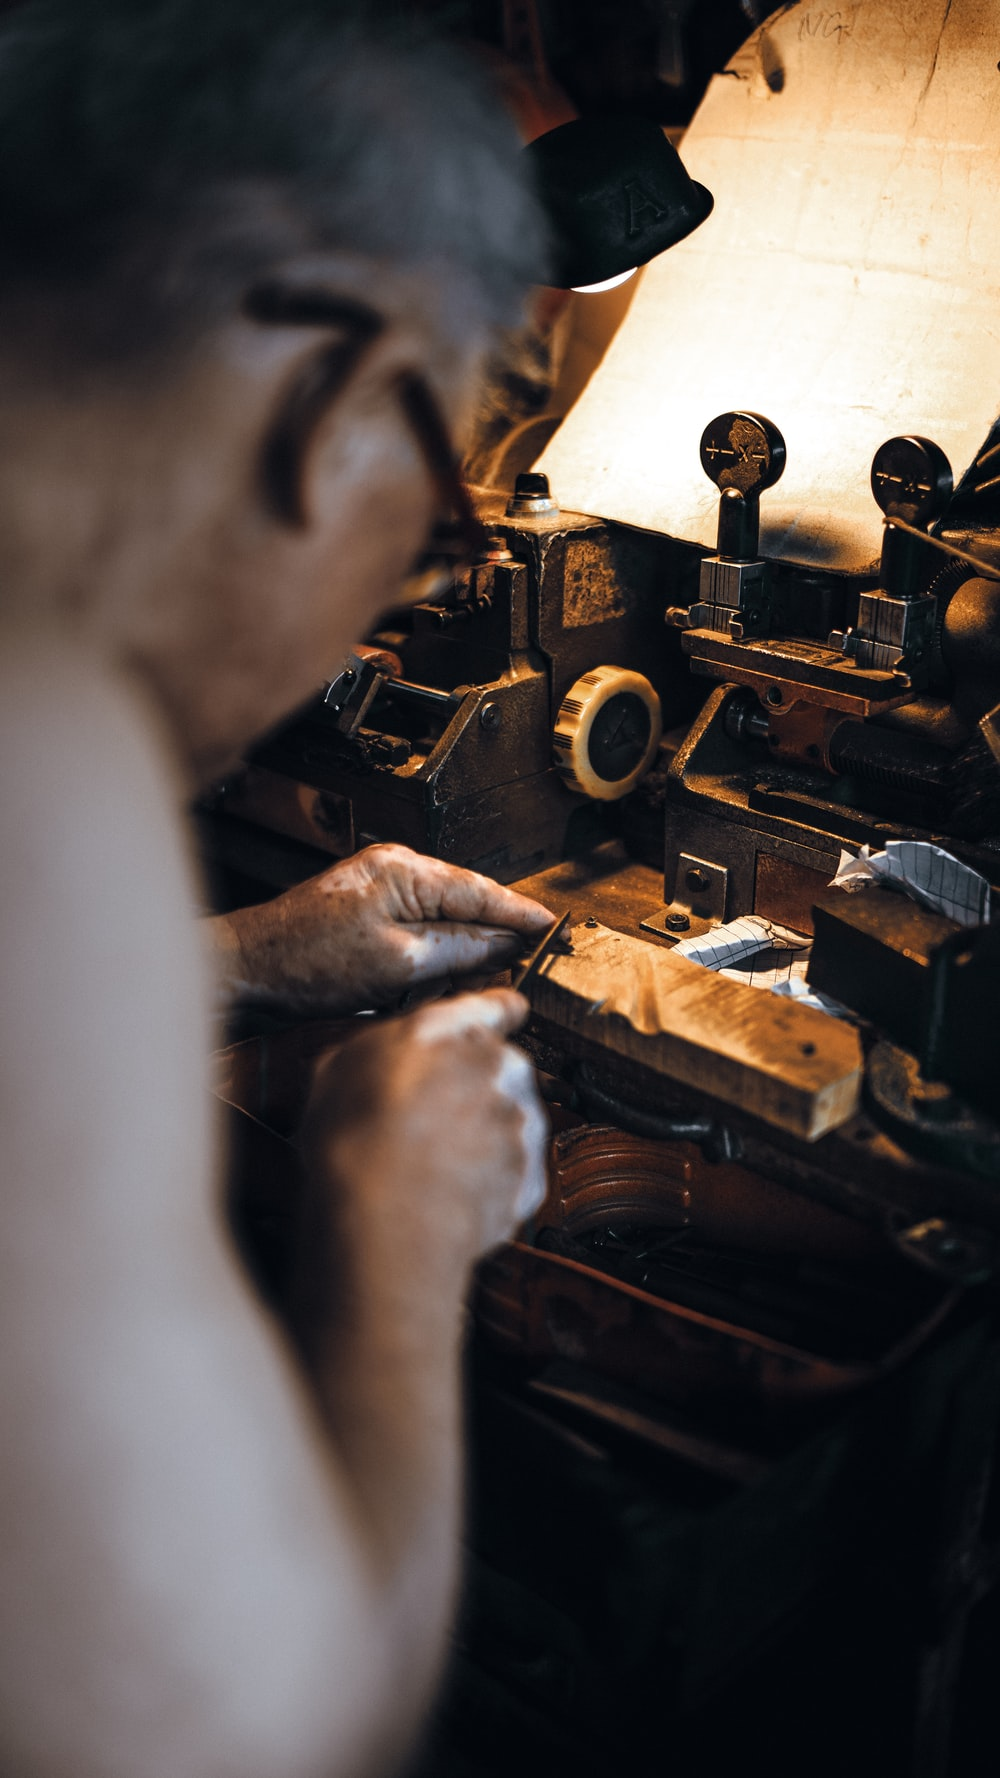 person in gray long sleeve shirt using brown sewing machine